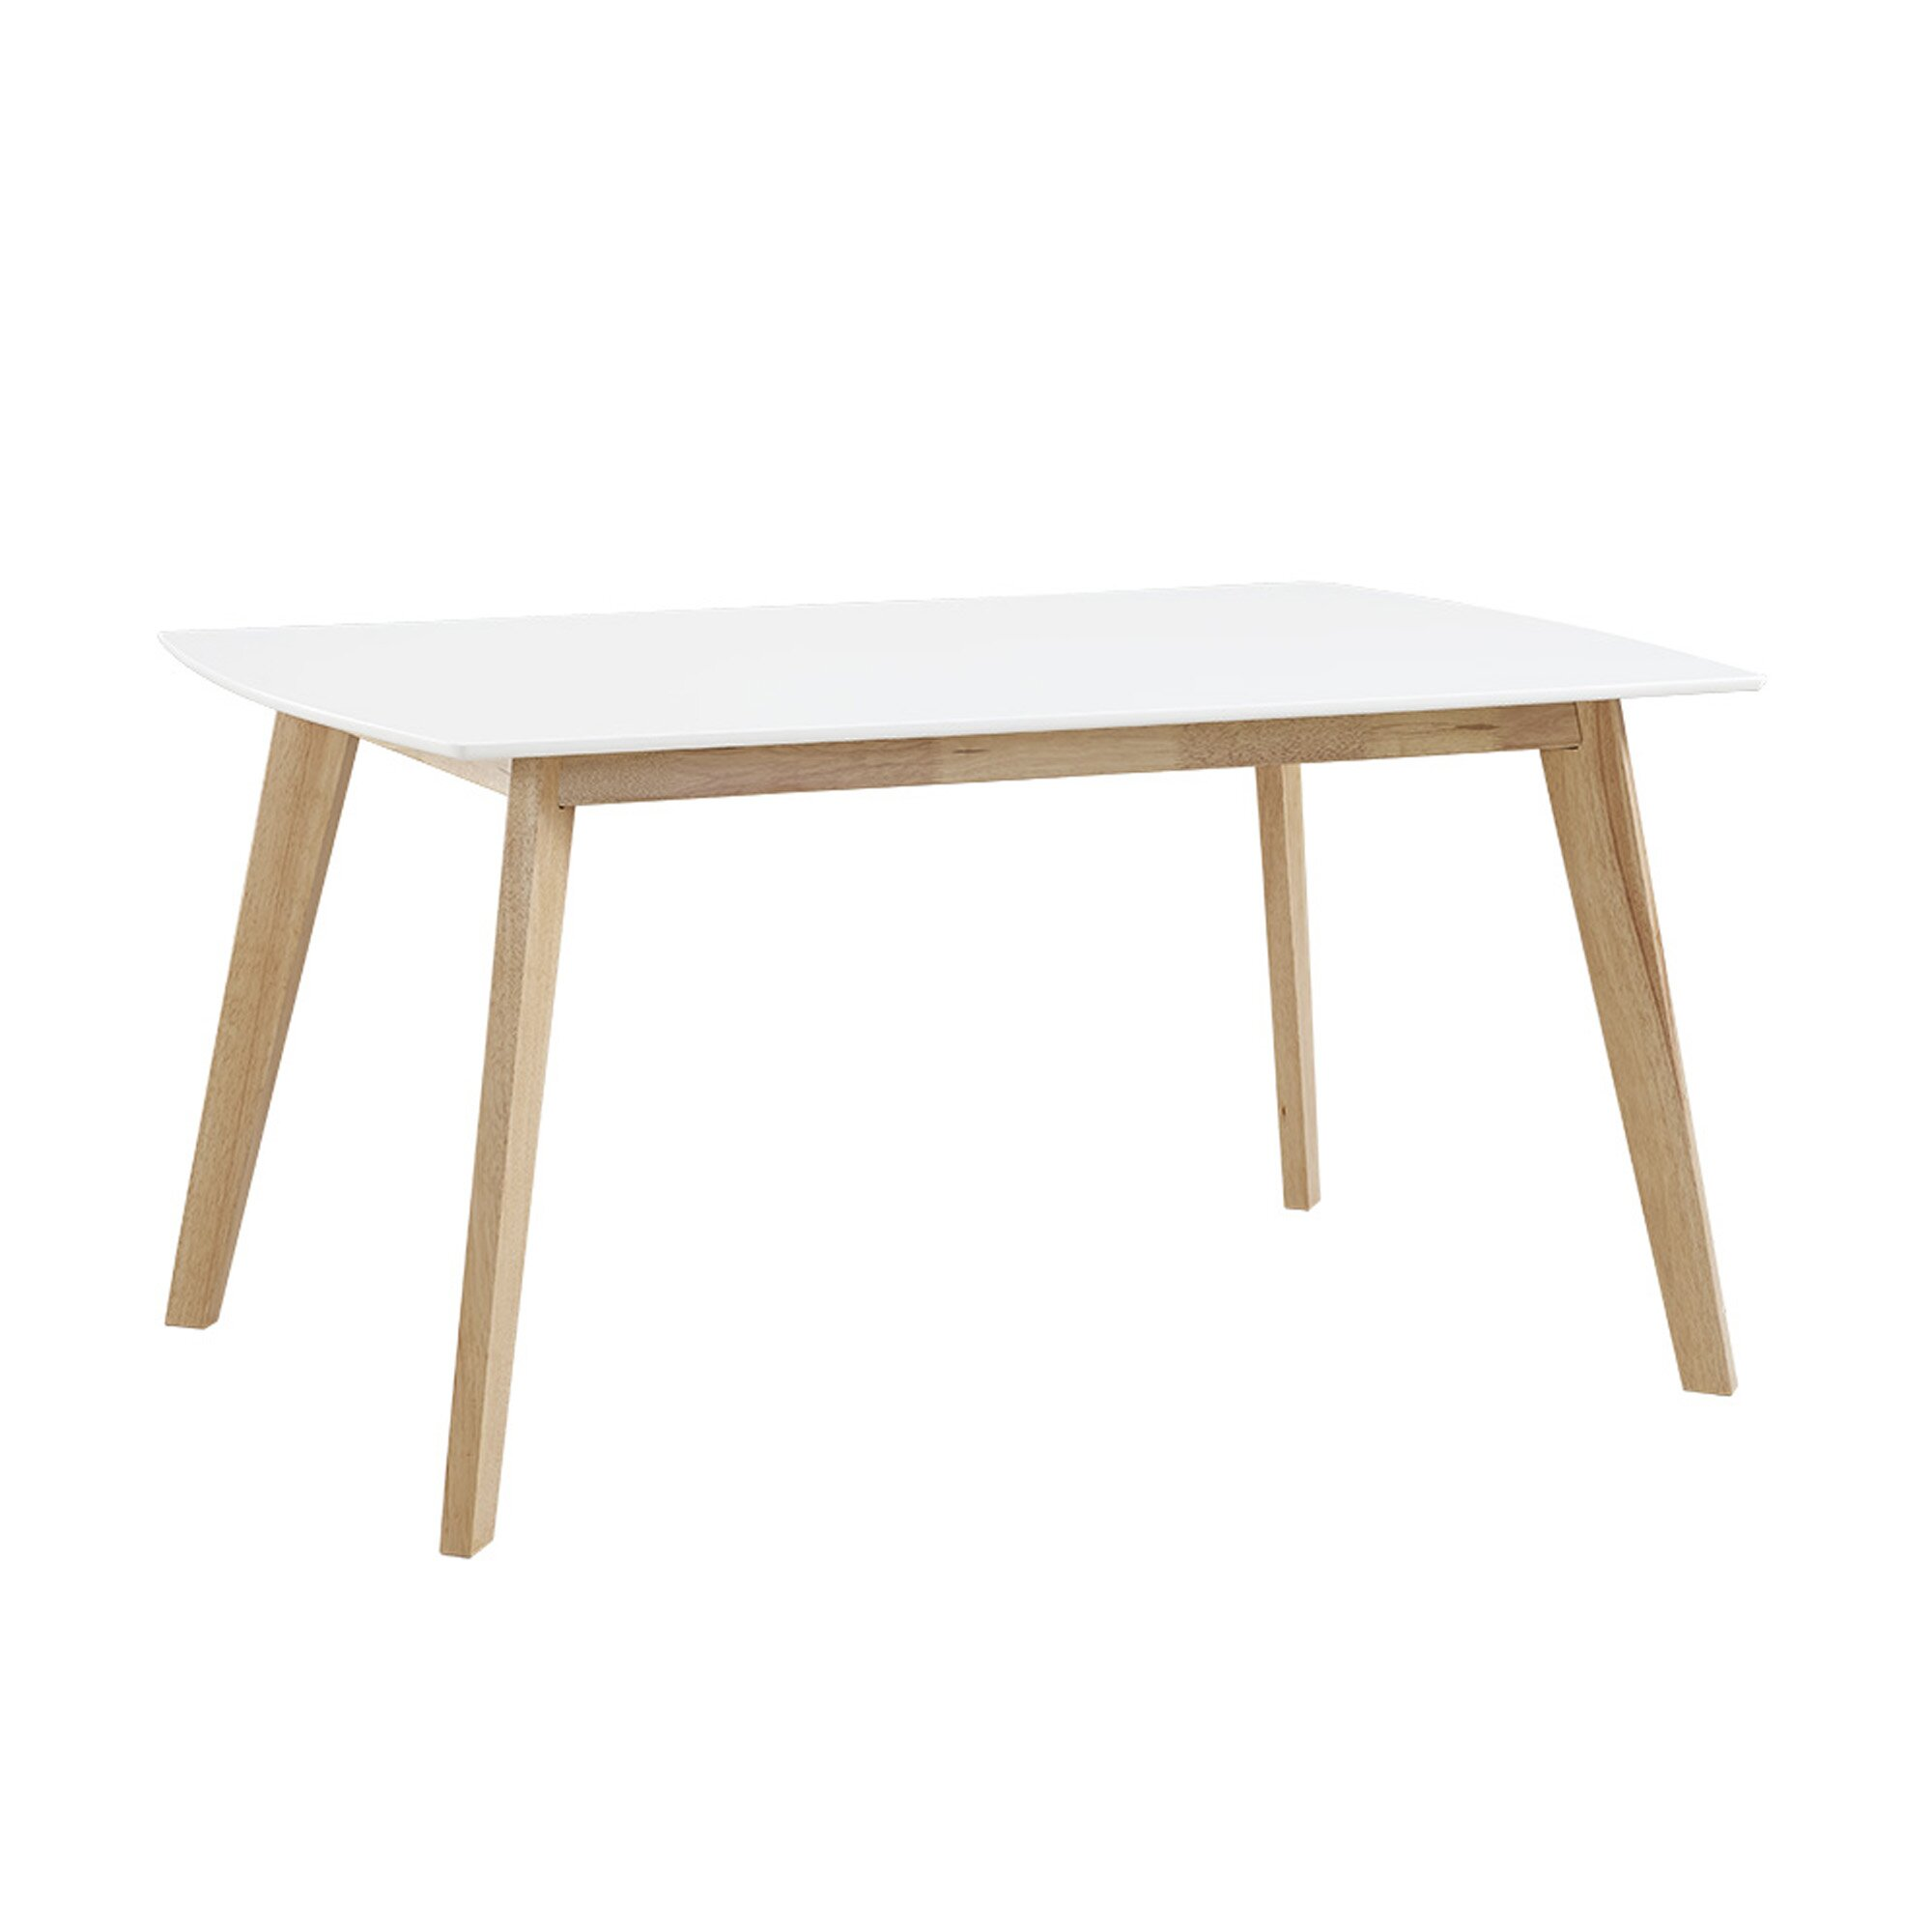 Brayden studio broadus retro modern dining table wayfair for Retro dining table